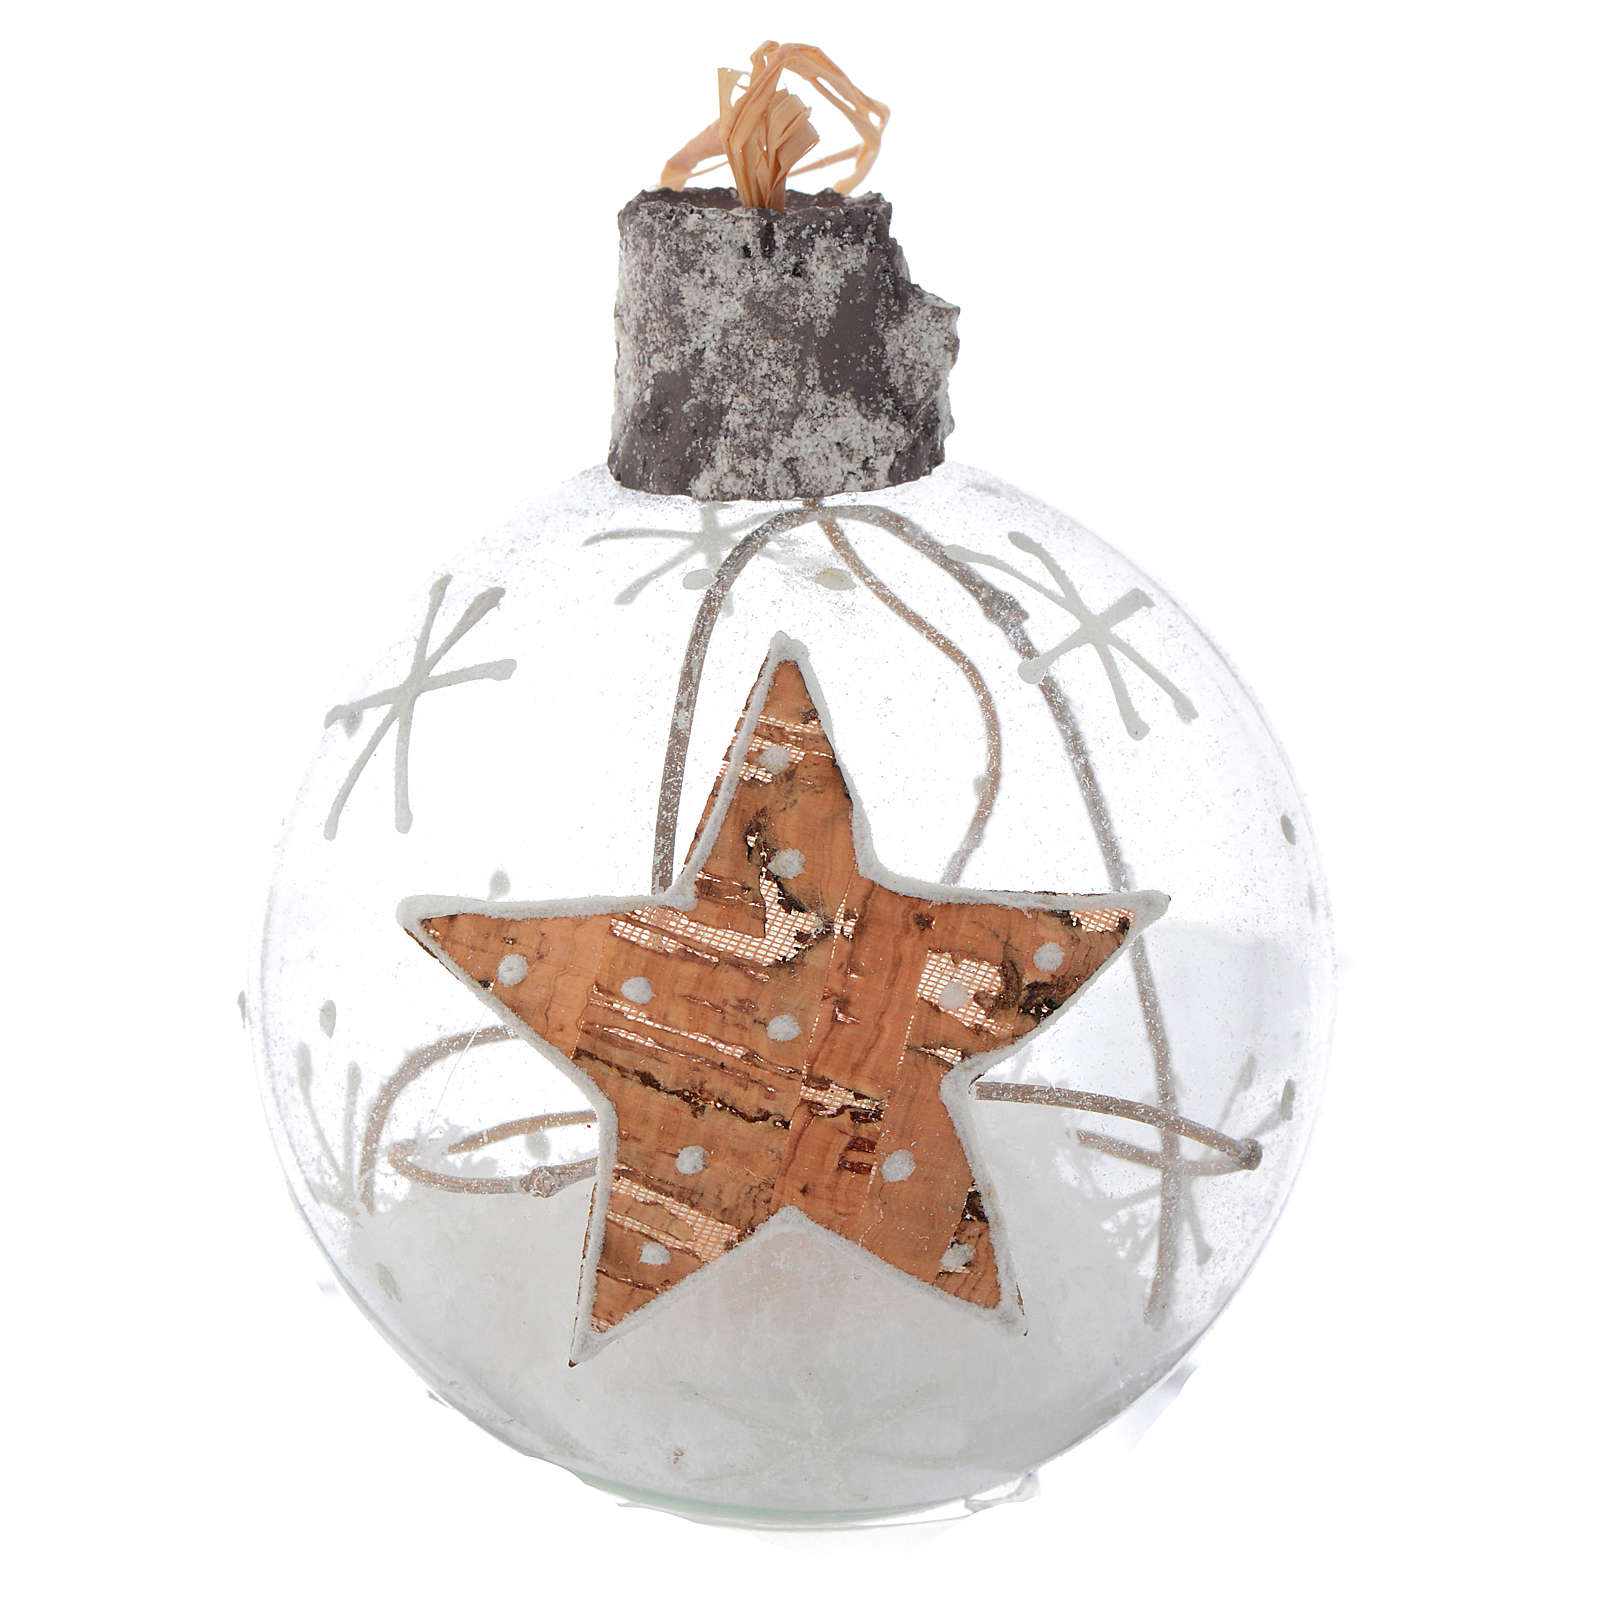 Glass Christmas bauble, with snow inside, 80mm diameter 4